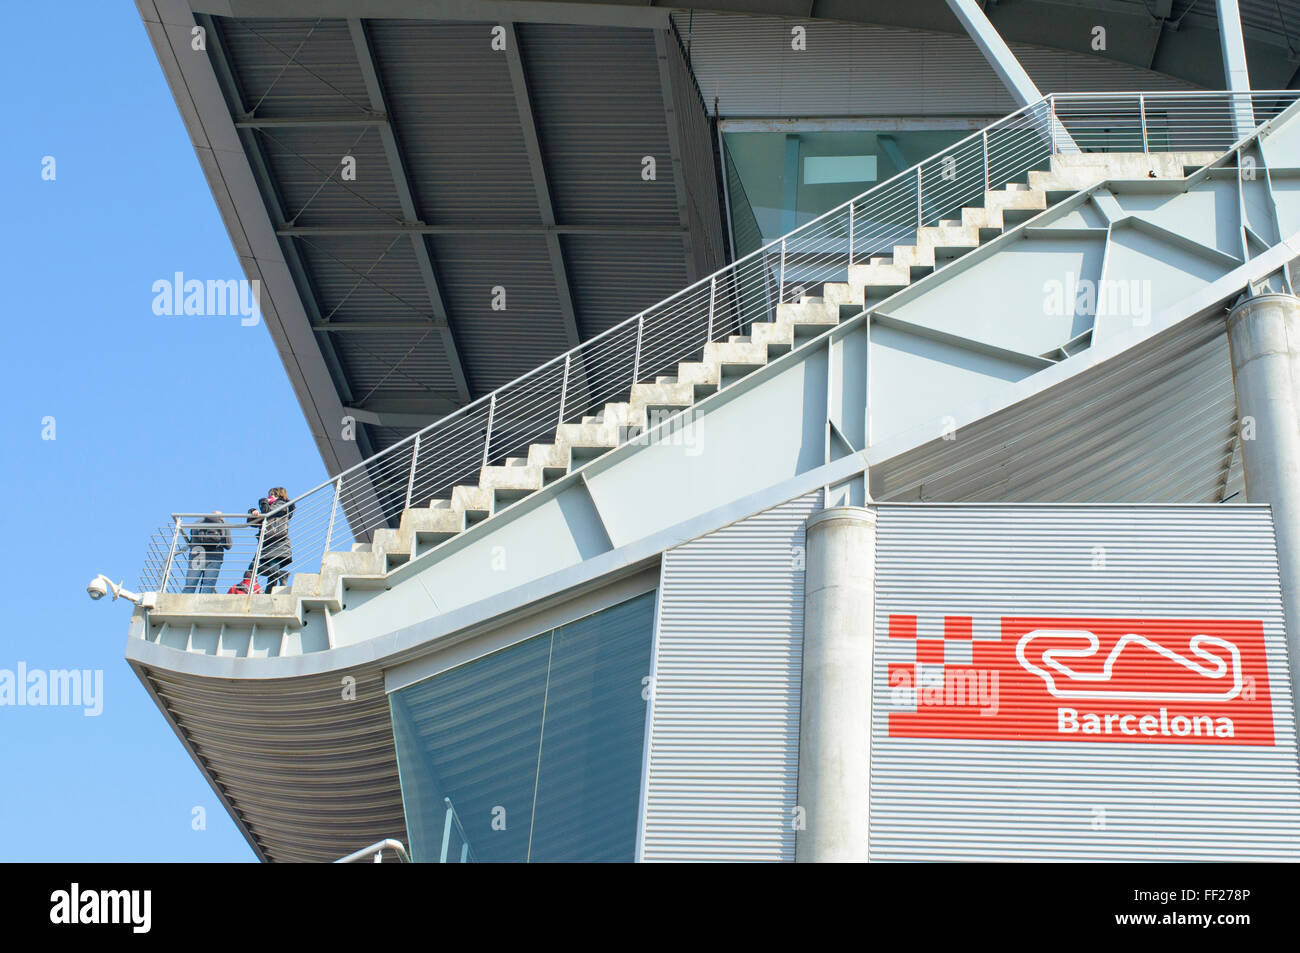 Two tourists in the gallery circuit Catalonia - Montmeló on a sunny day - Stock Image